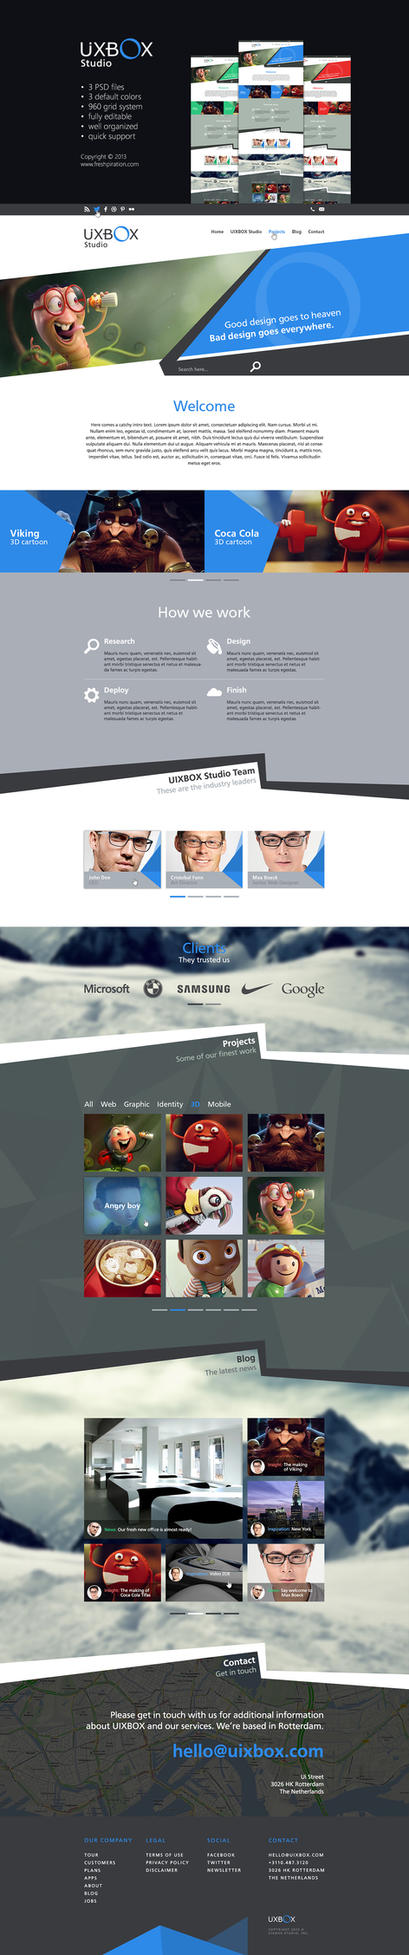 UIXBOX Web Design by SMHYLMZ